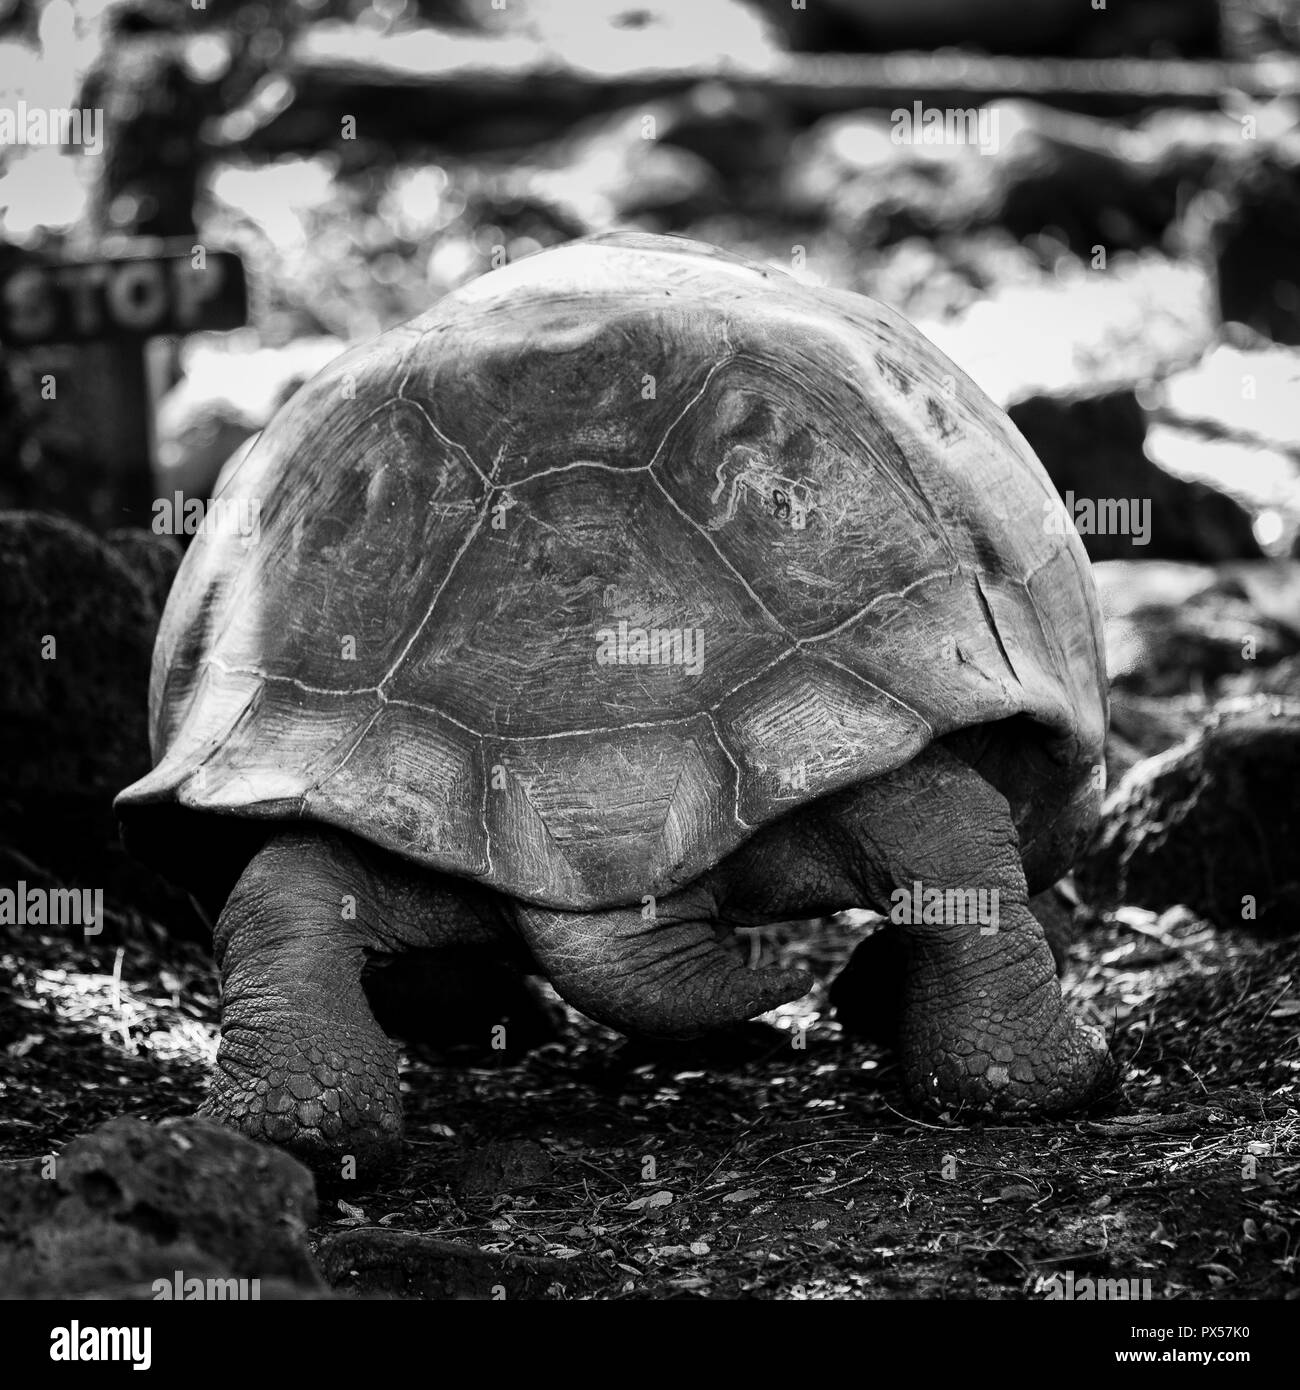 Hybrid turtle walking away in the highlands of Floreana. The sturdy back legs and tail denote a male of some stature. - Stock Image